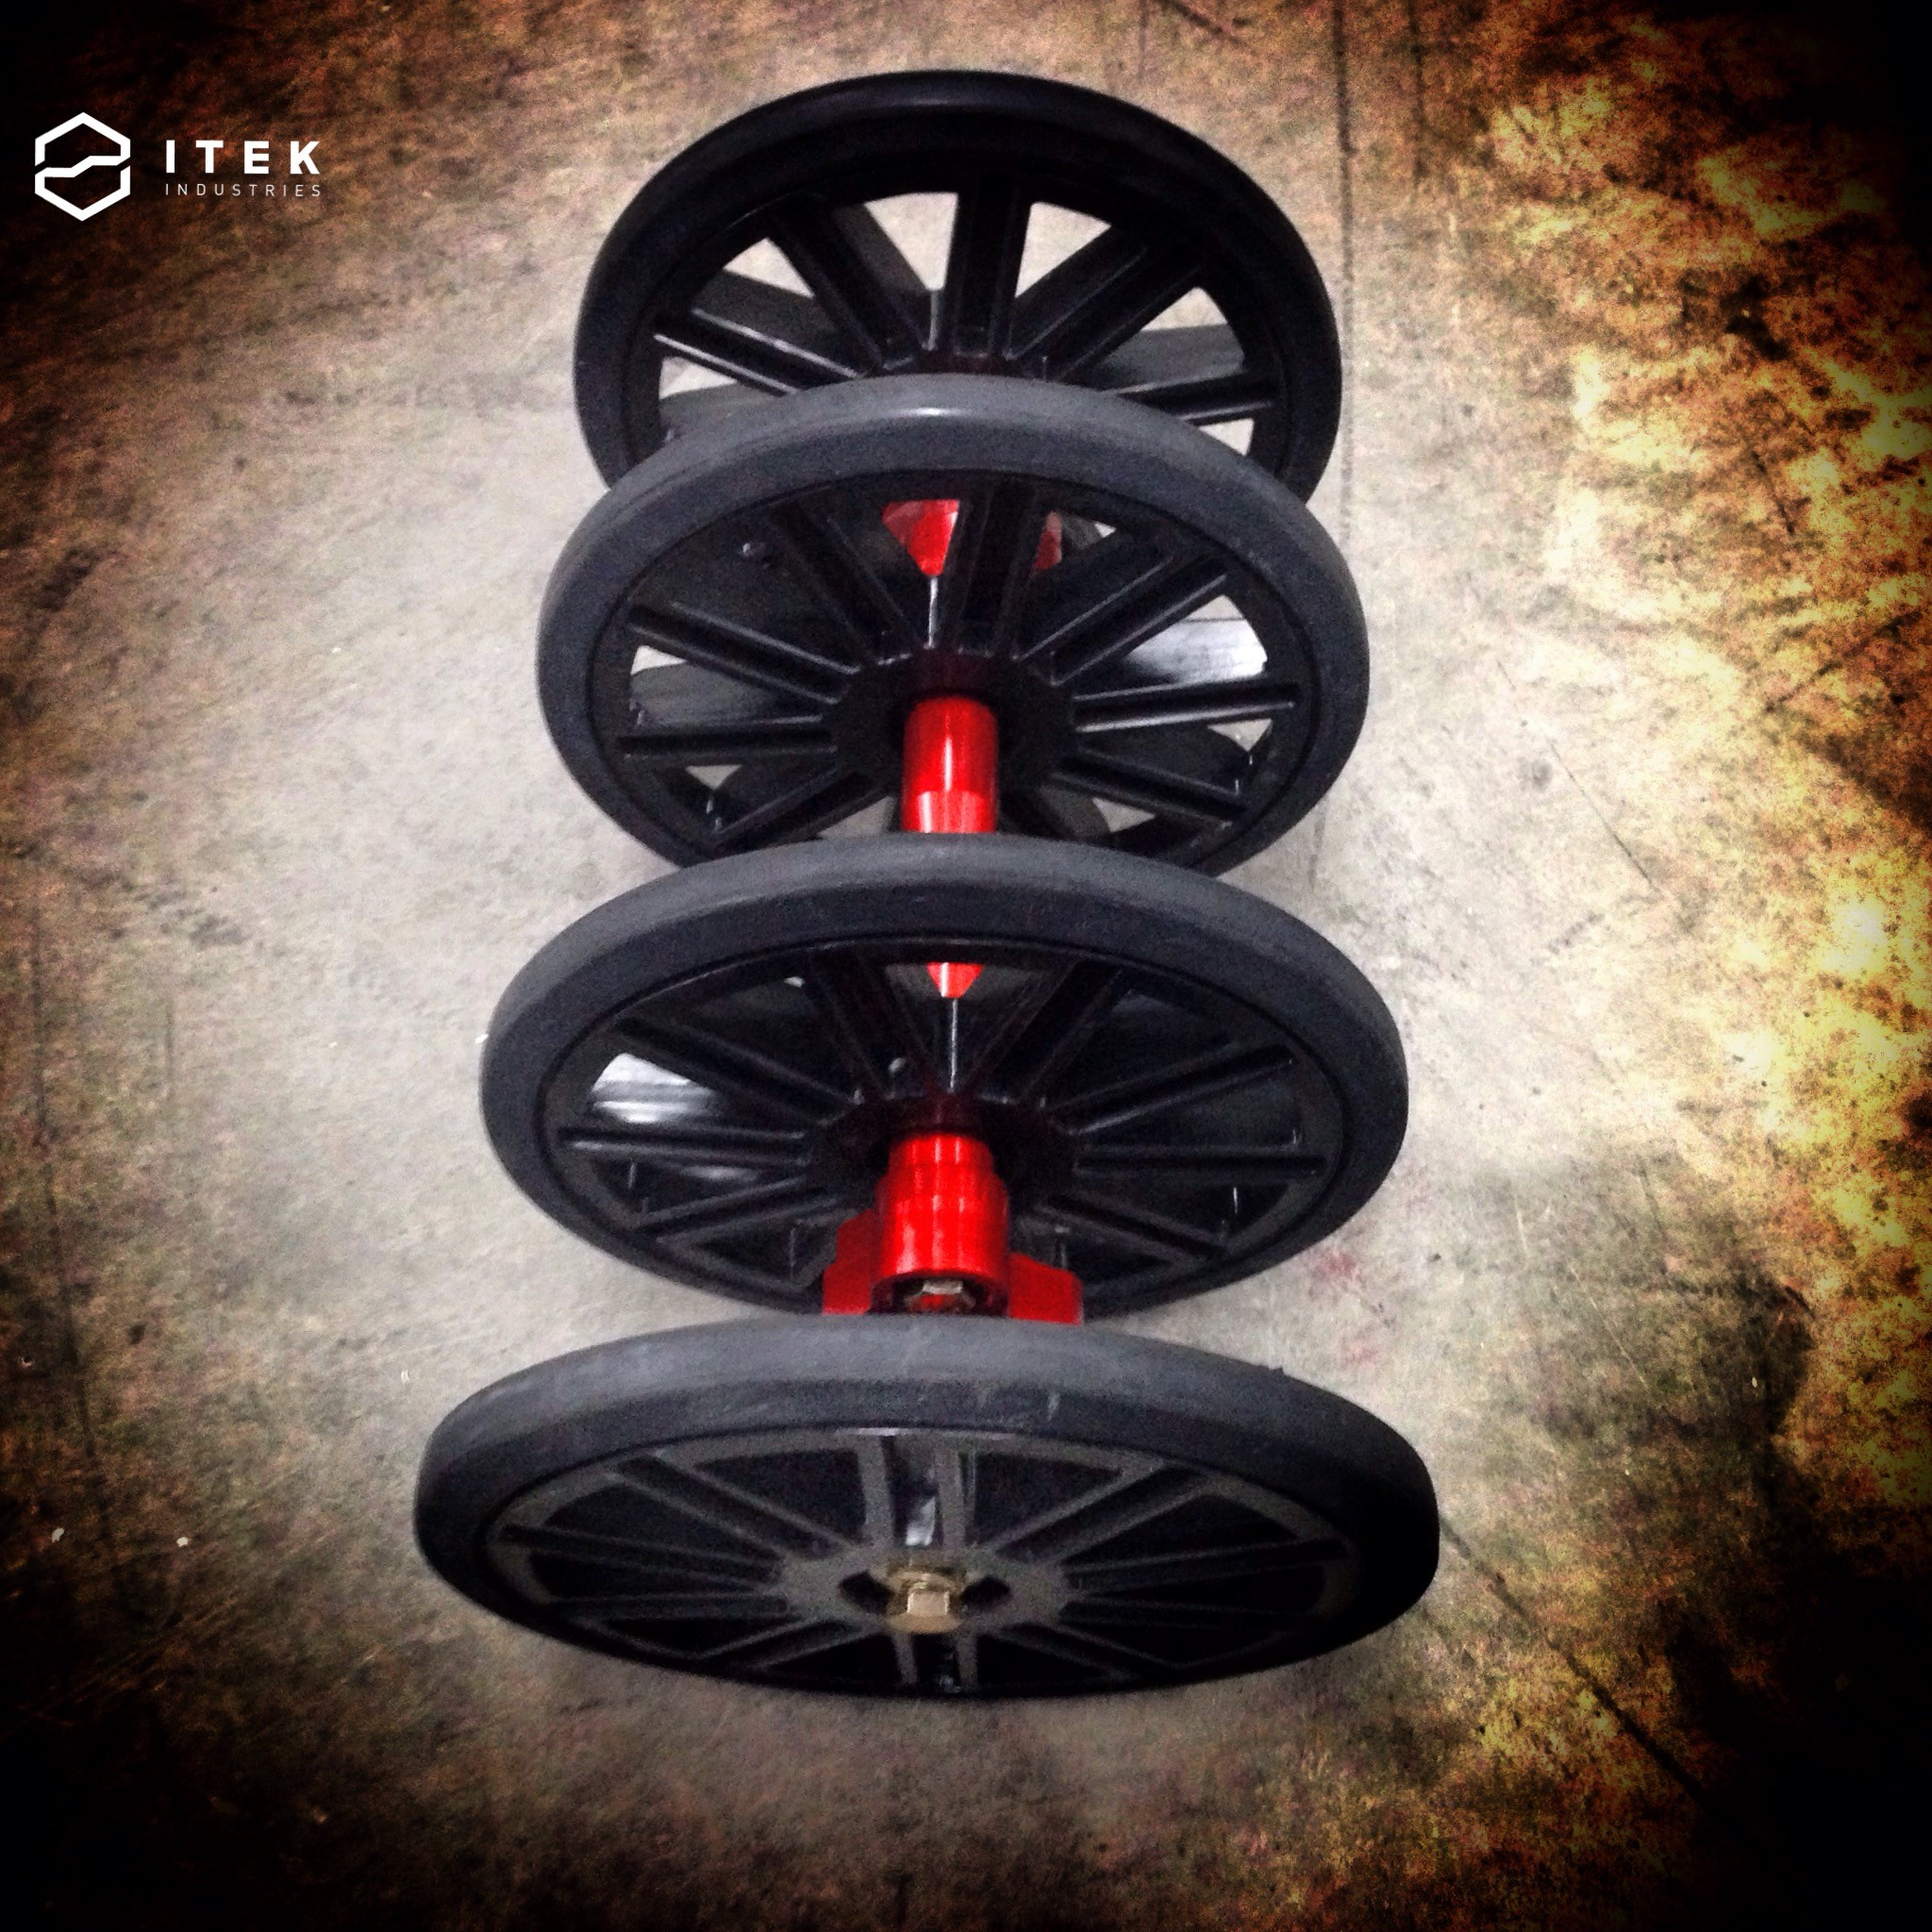 big wheels kit plastic with rubber wheels performance parts for s. Black Bedroom Furniture Sets. Home Design Ideas